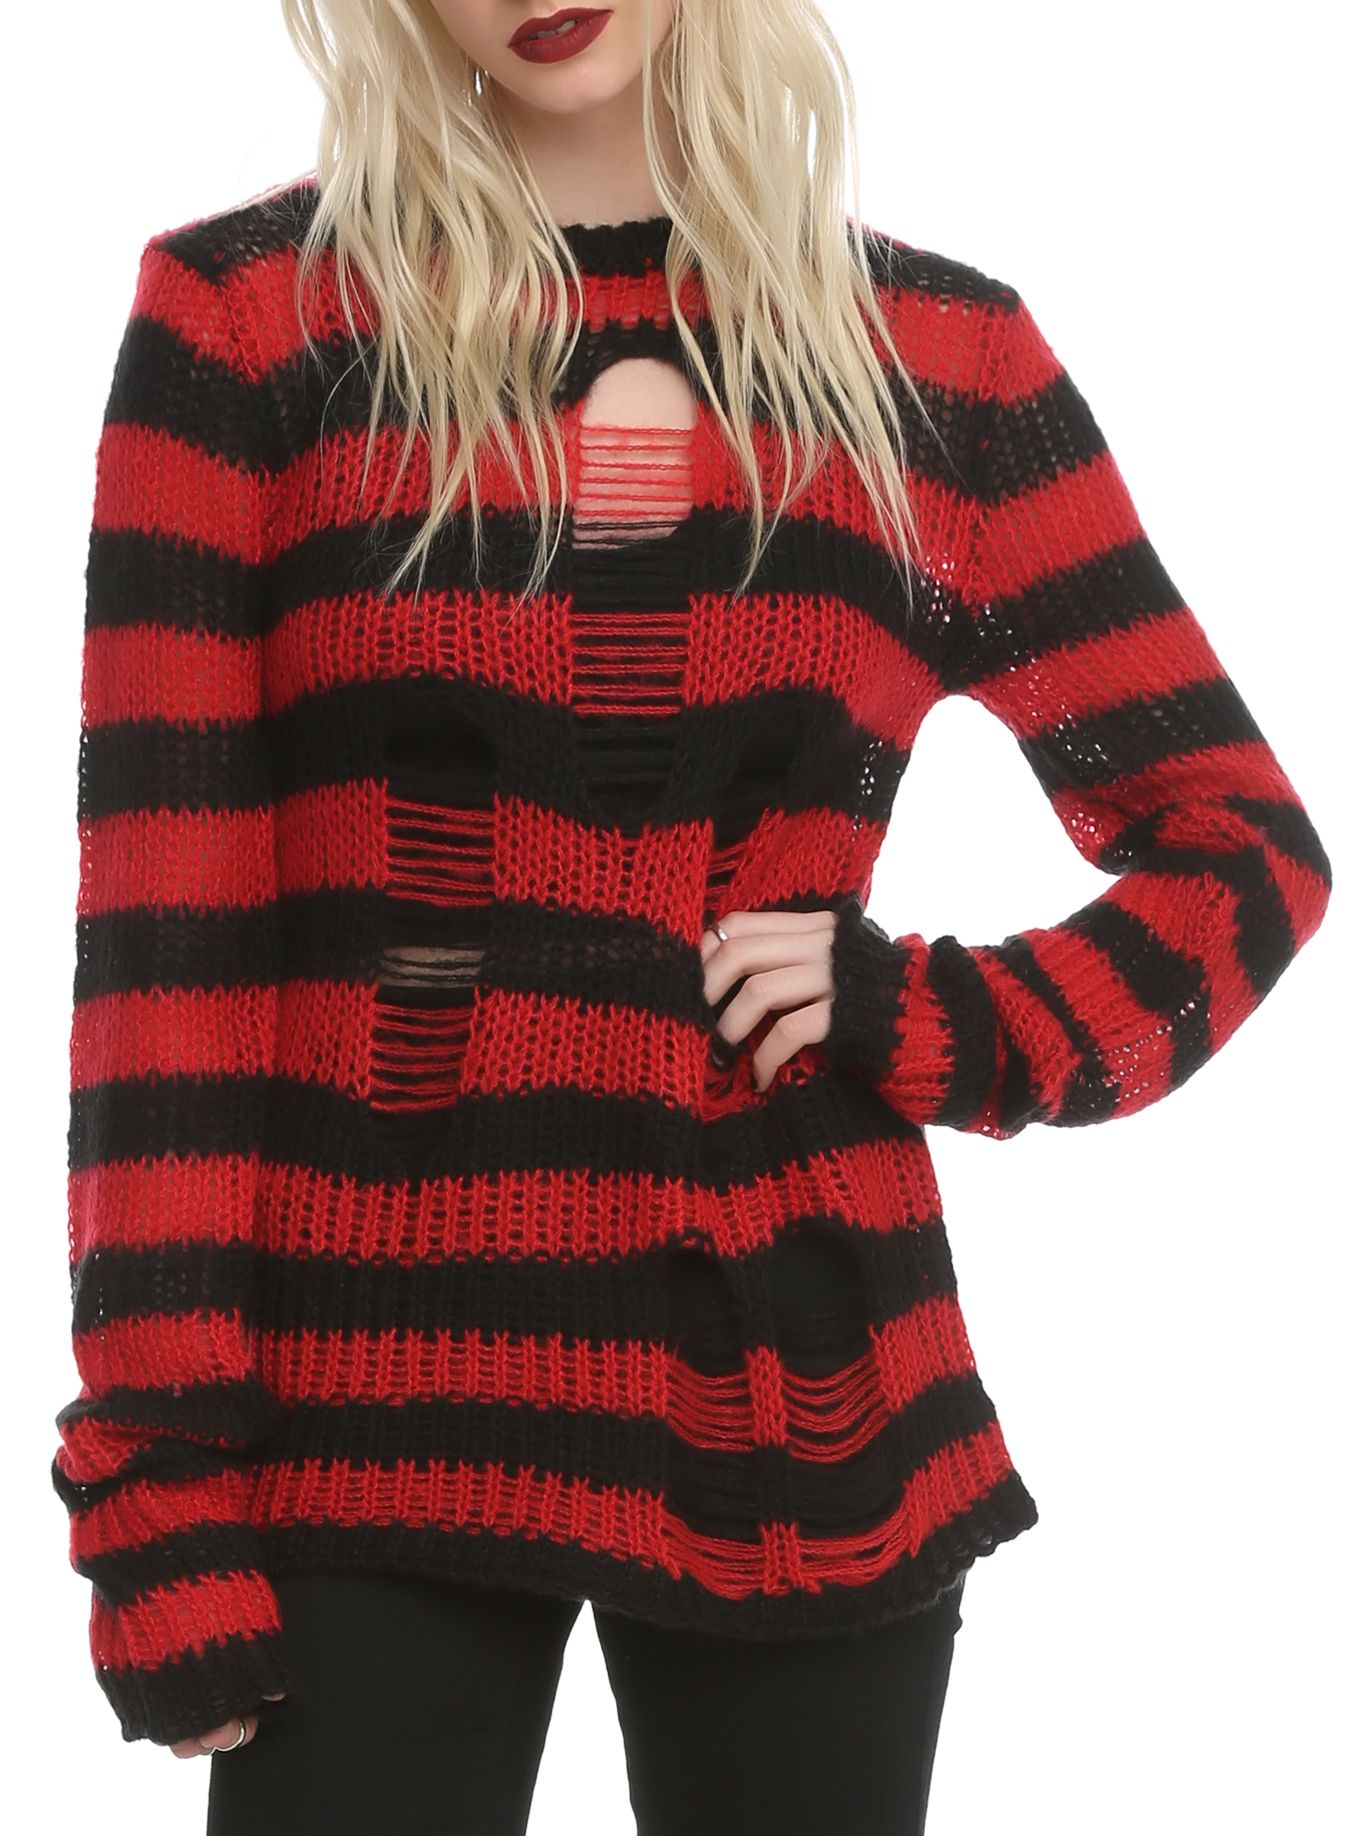 Red And Black Knit Sweater | Her Sweater